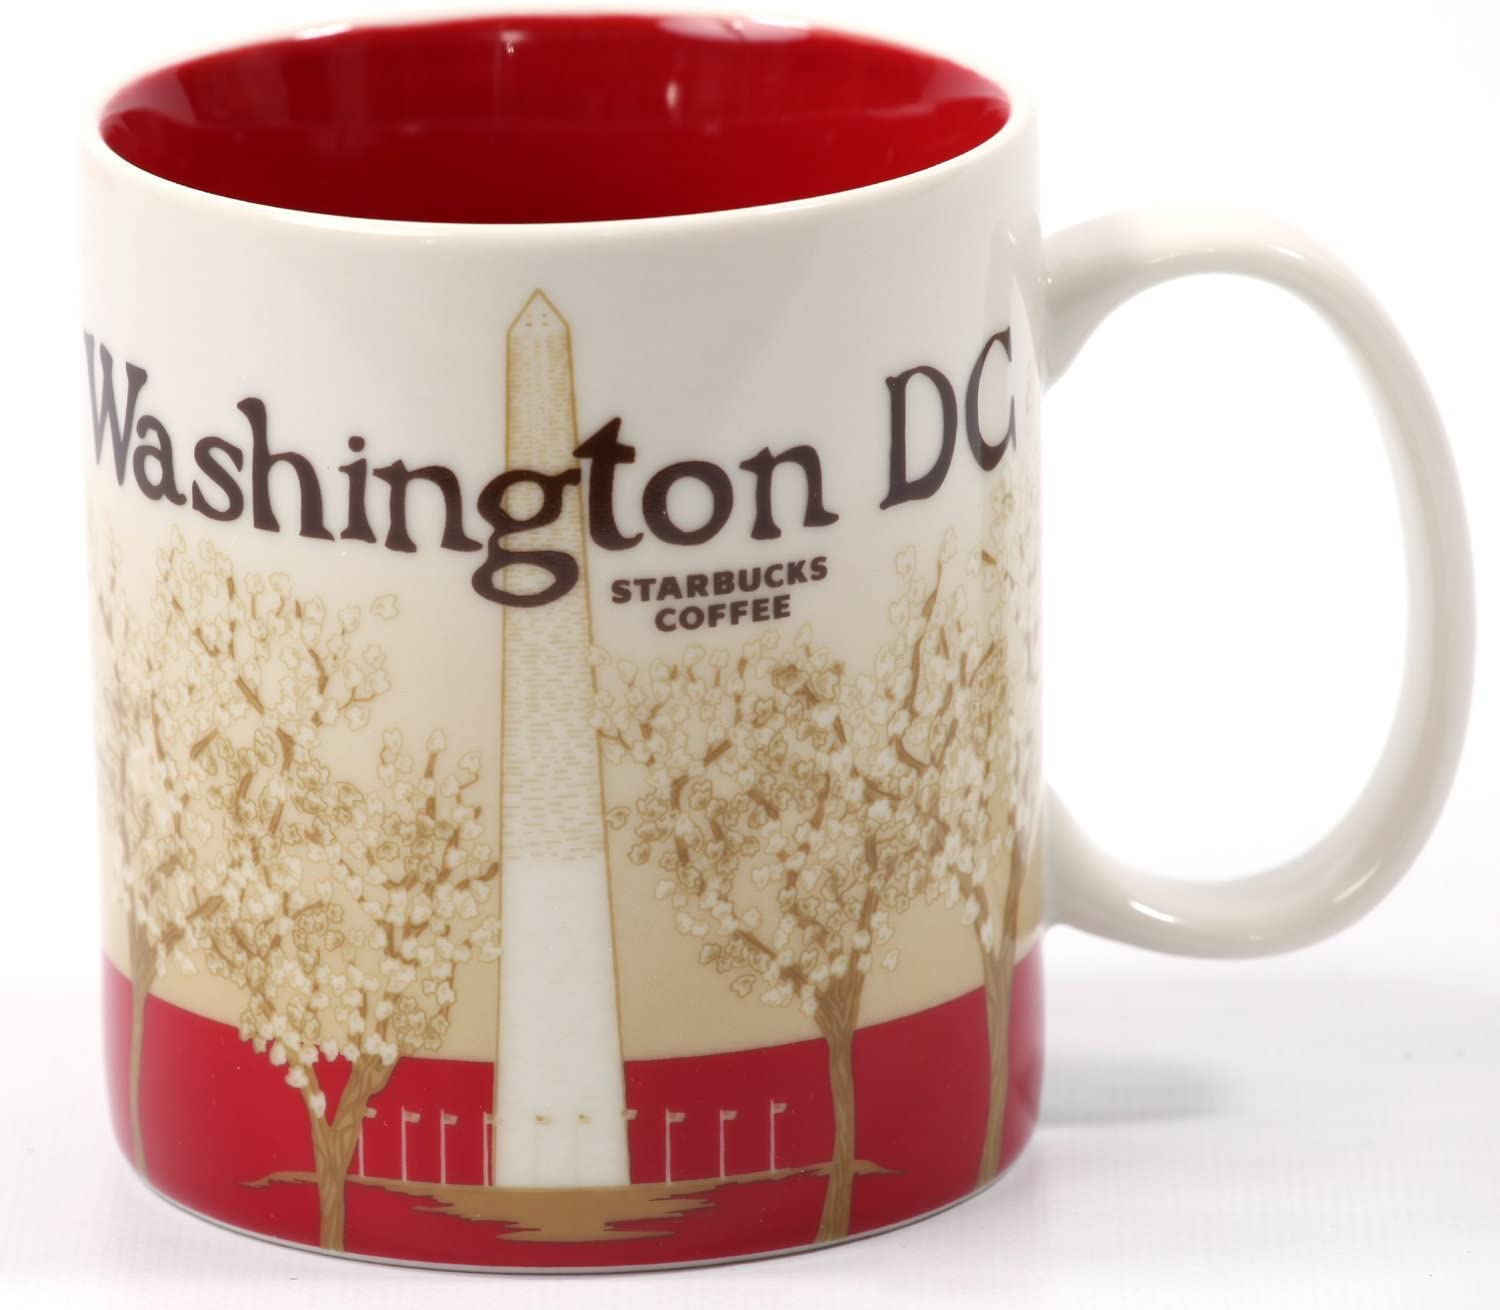 Starbucks Coffee 2011 Washington DC Mug, 16 fl oz